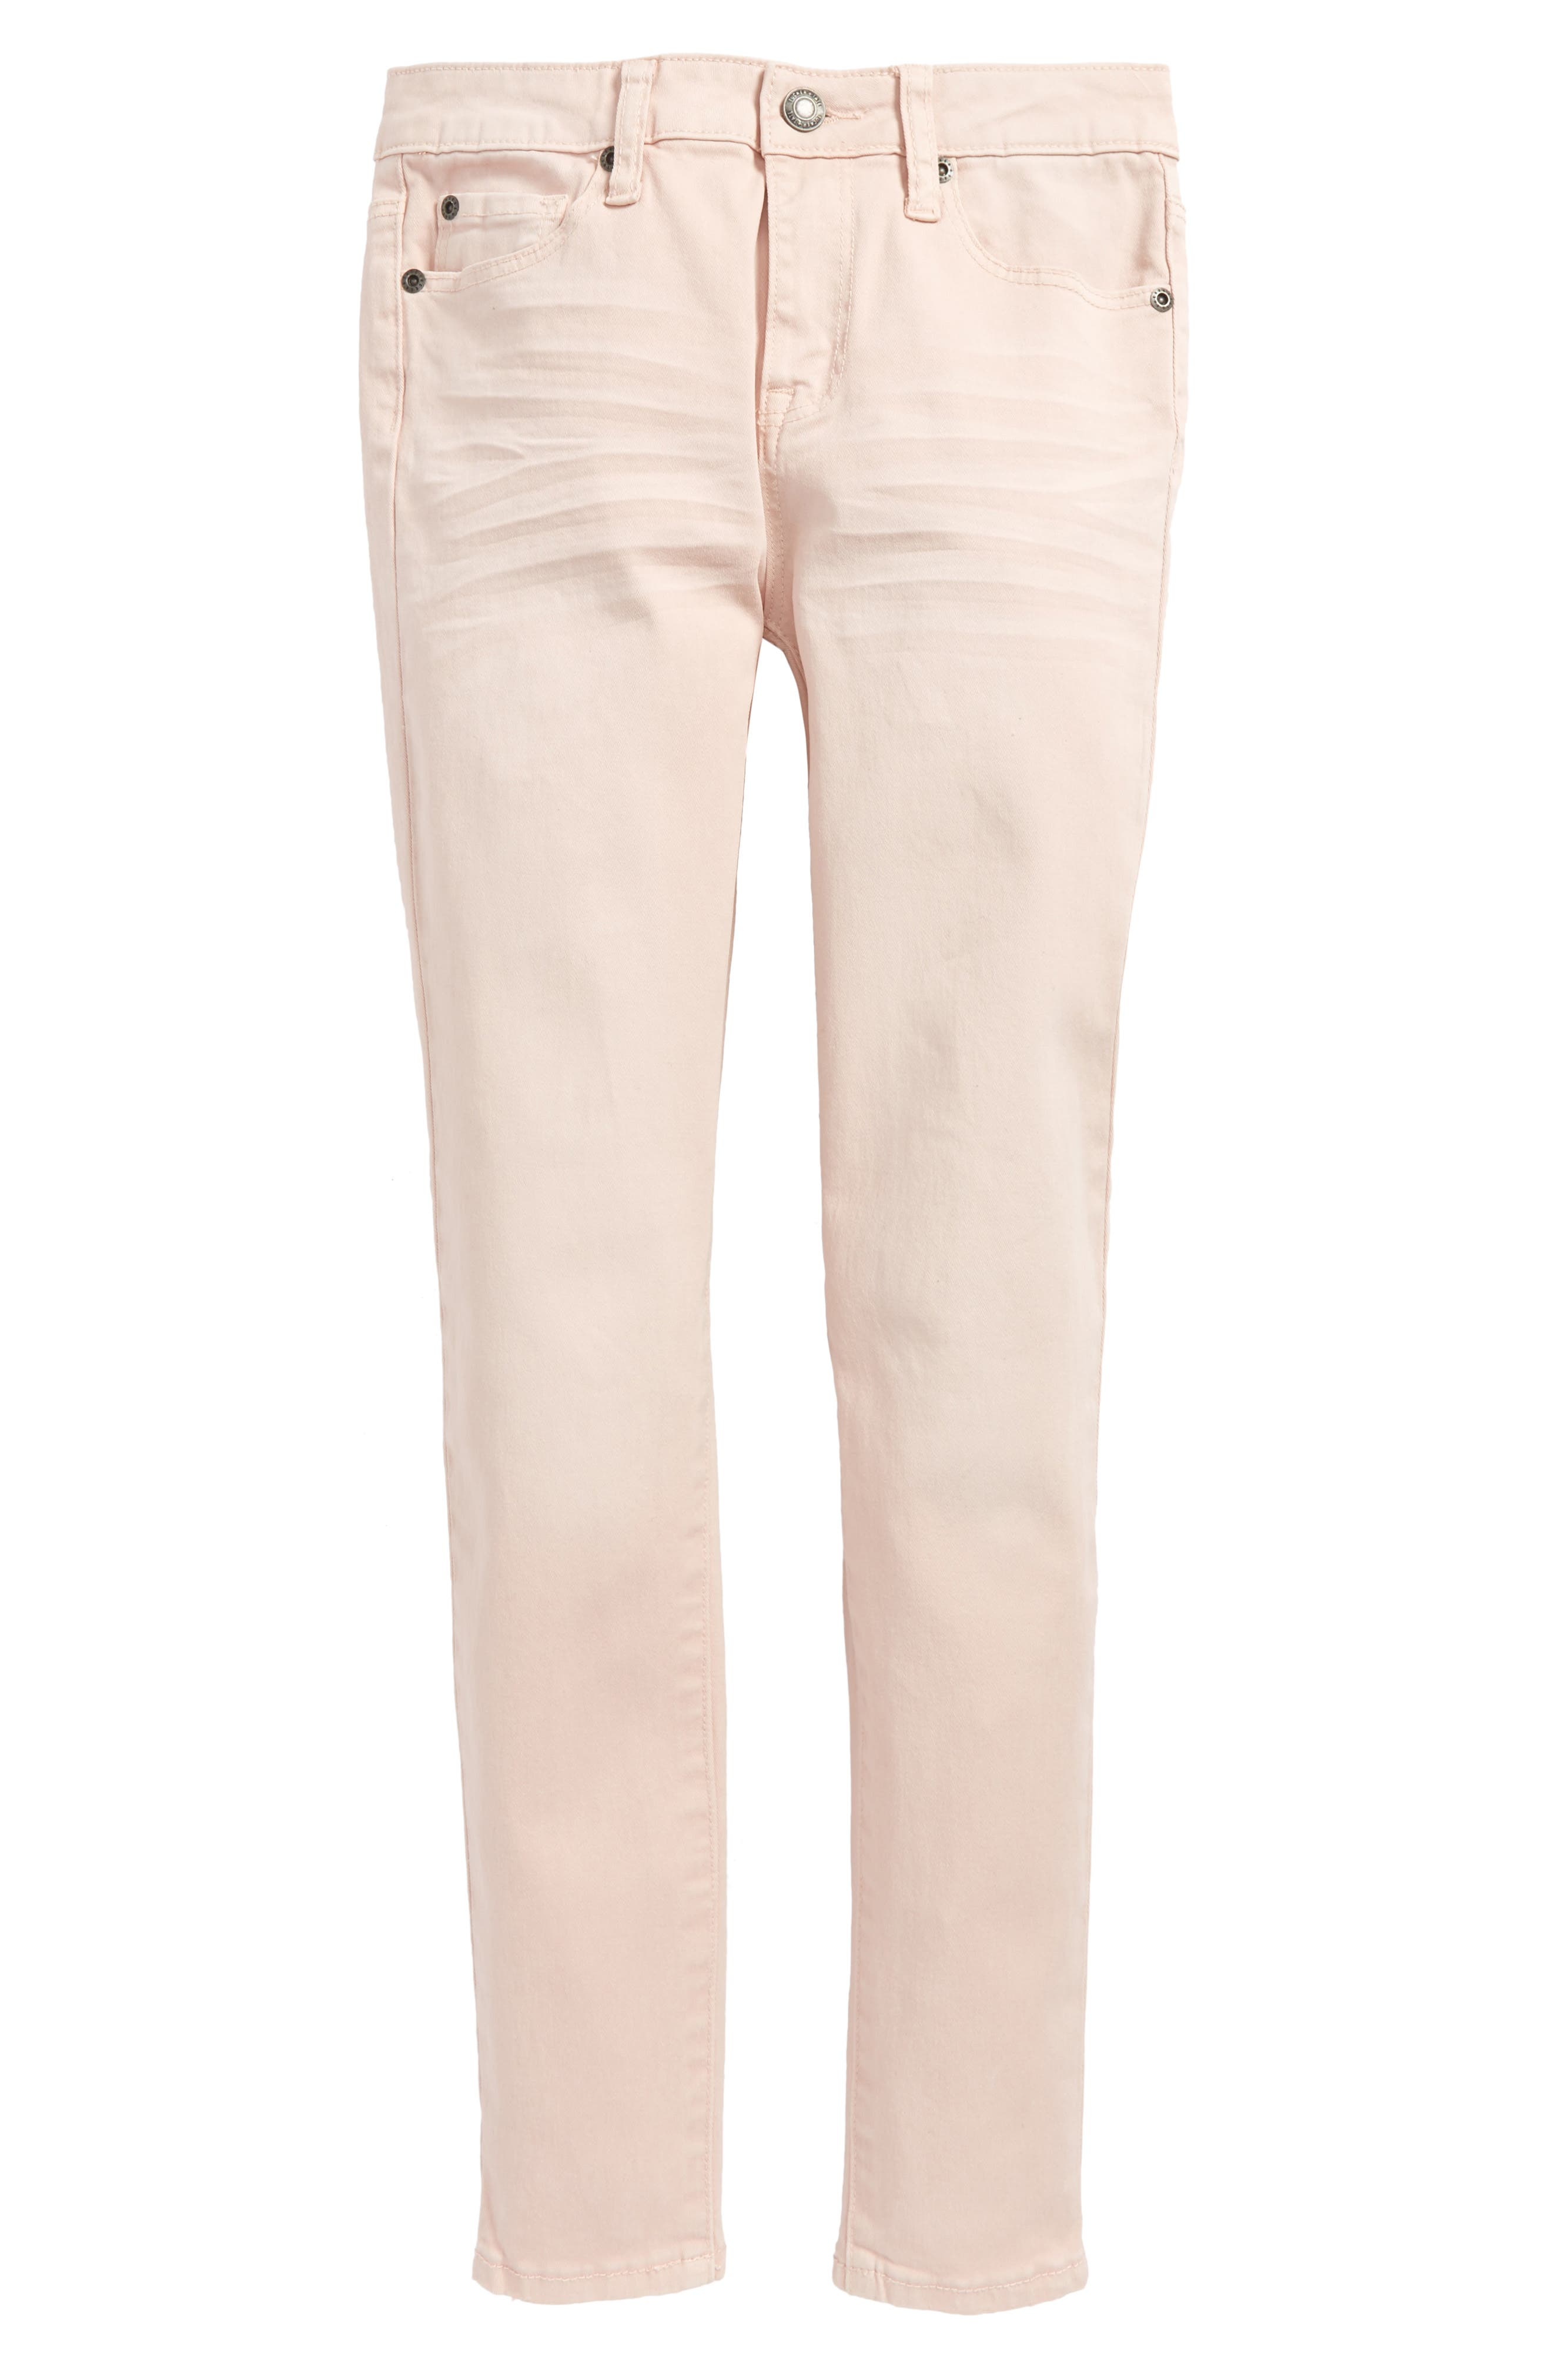 Colored Ankle Jeans,                         Main,                         color, Pink Pixie Wash